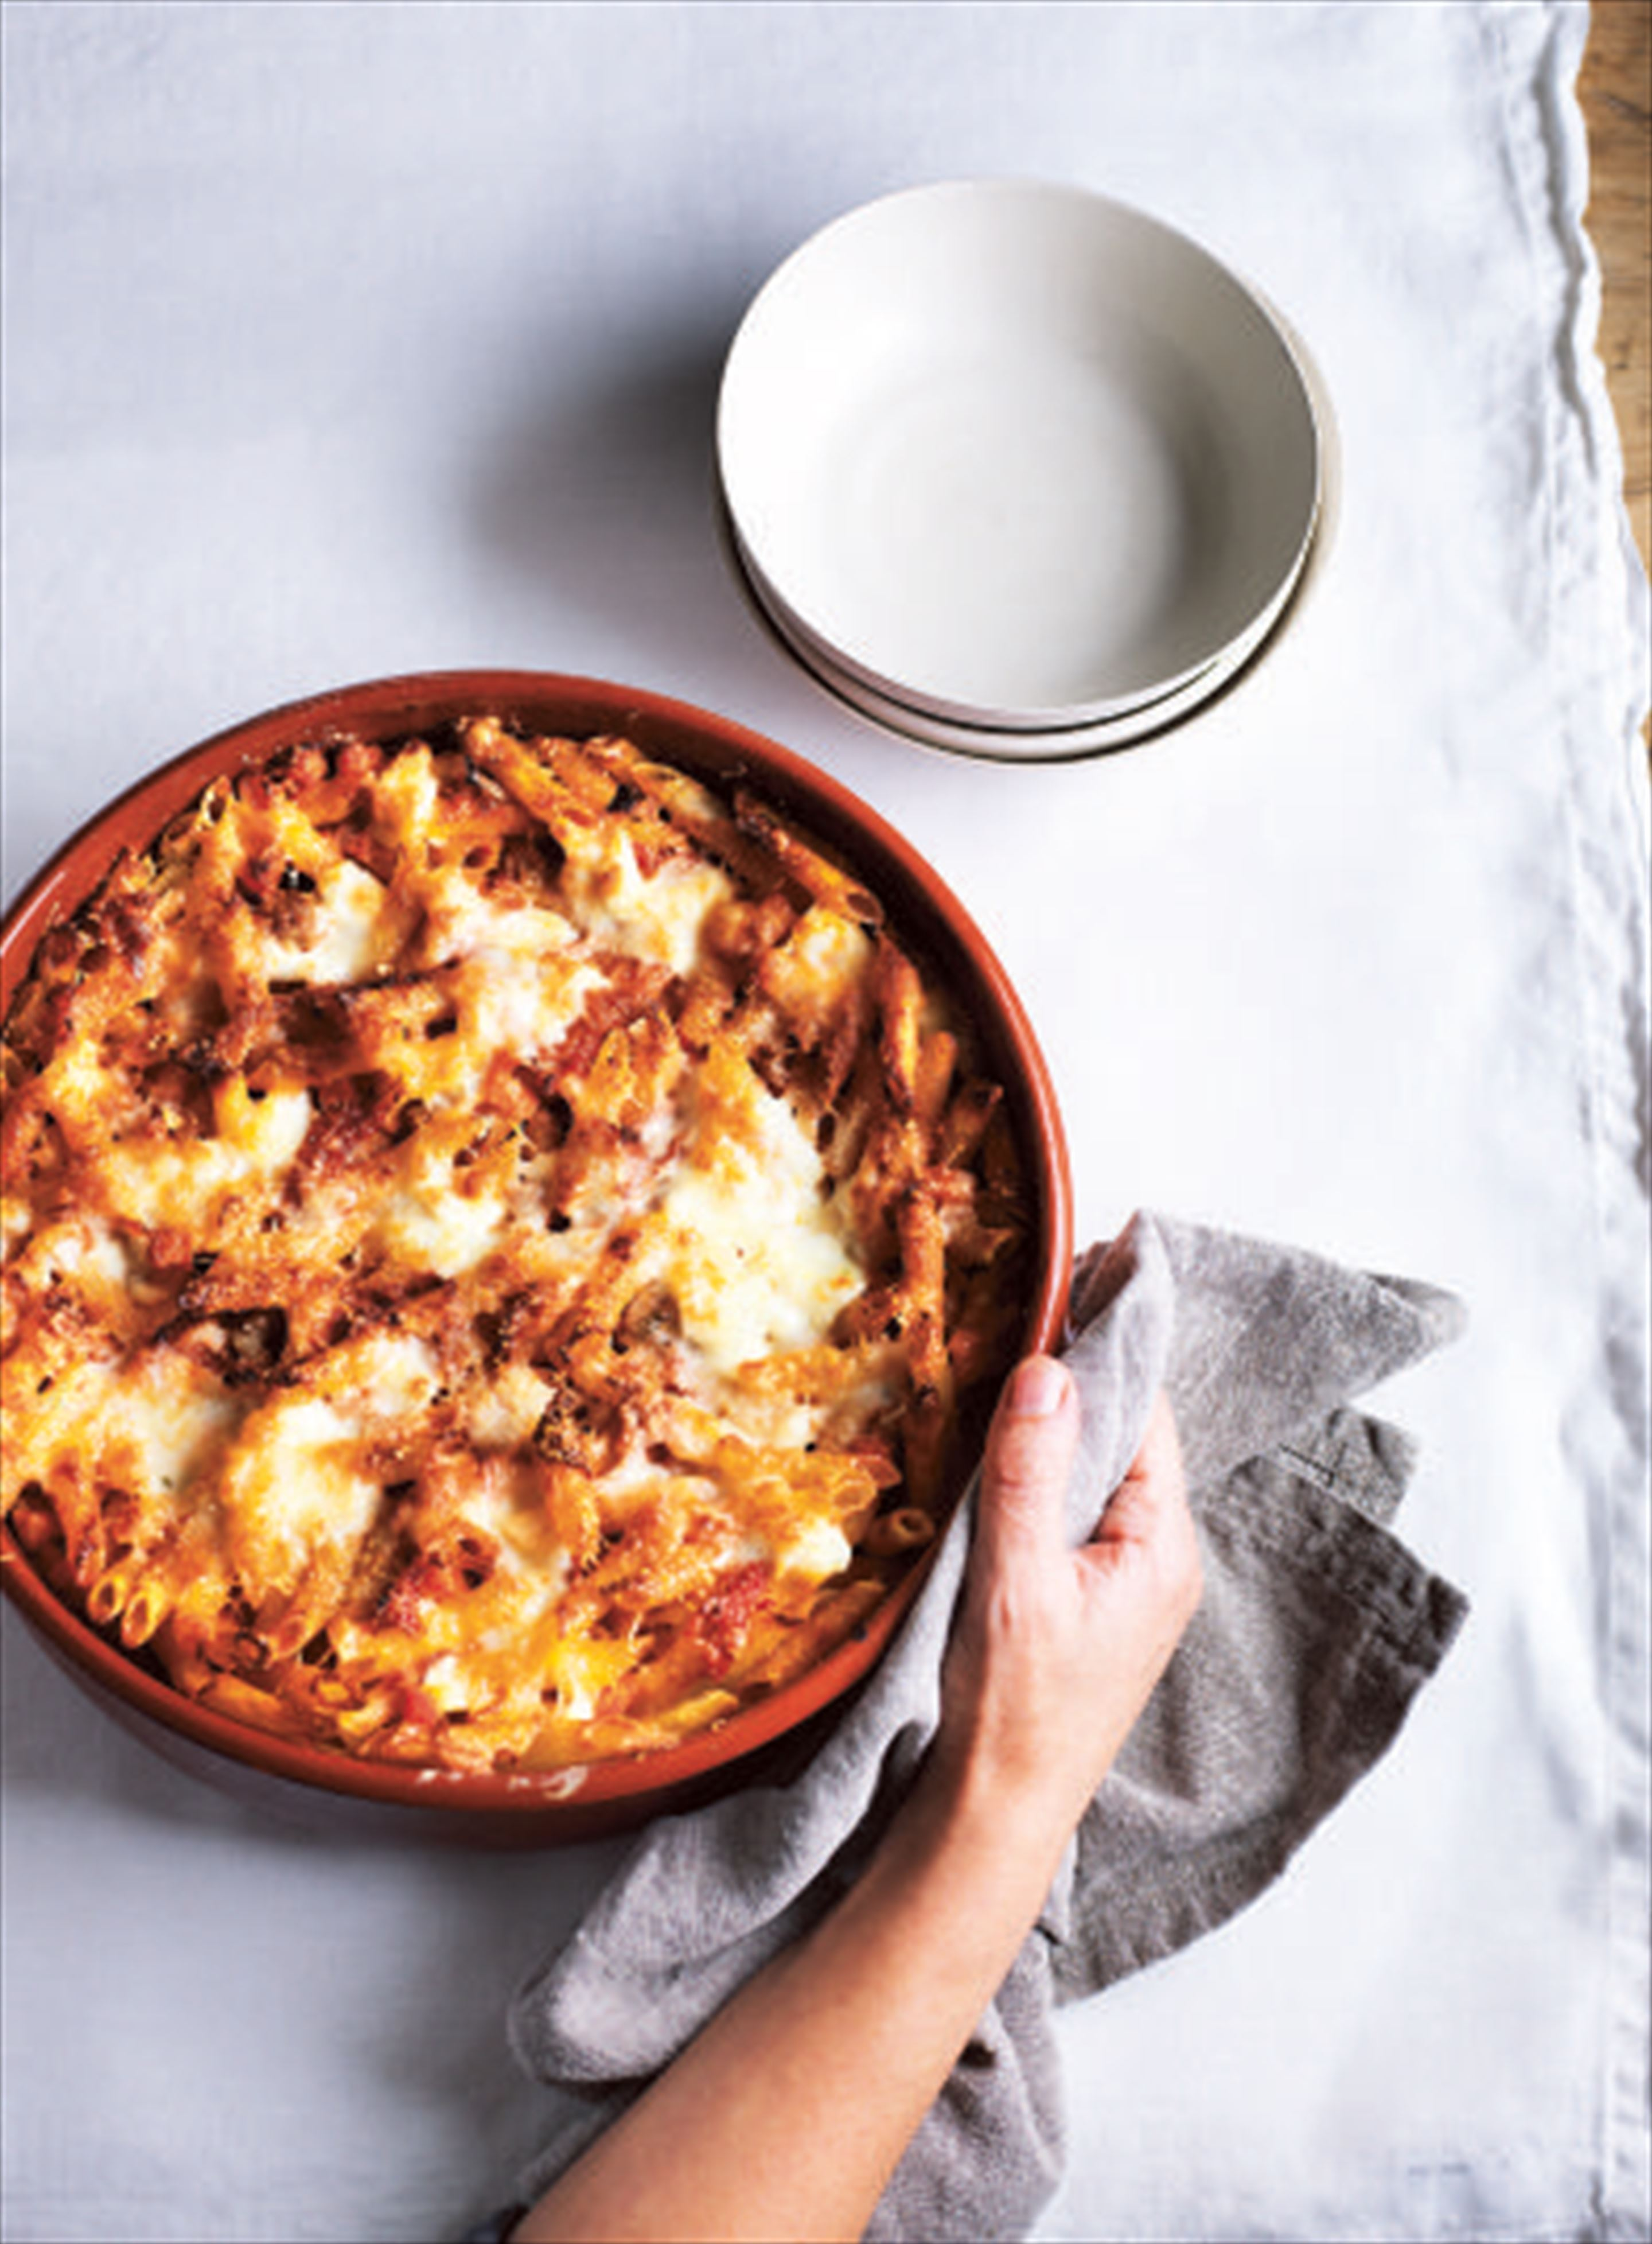 Oven-baked pasta